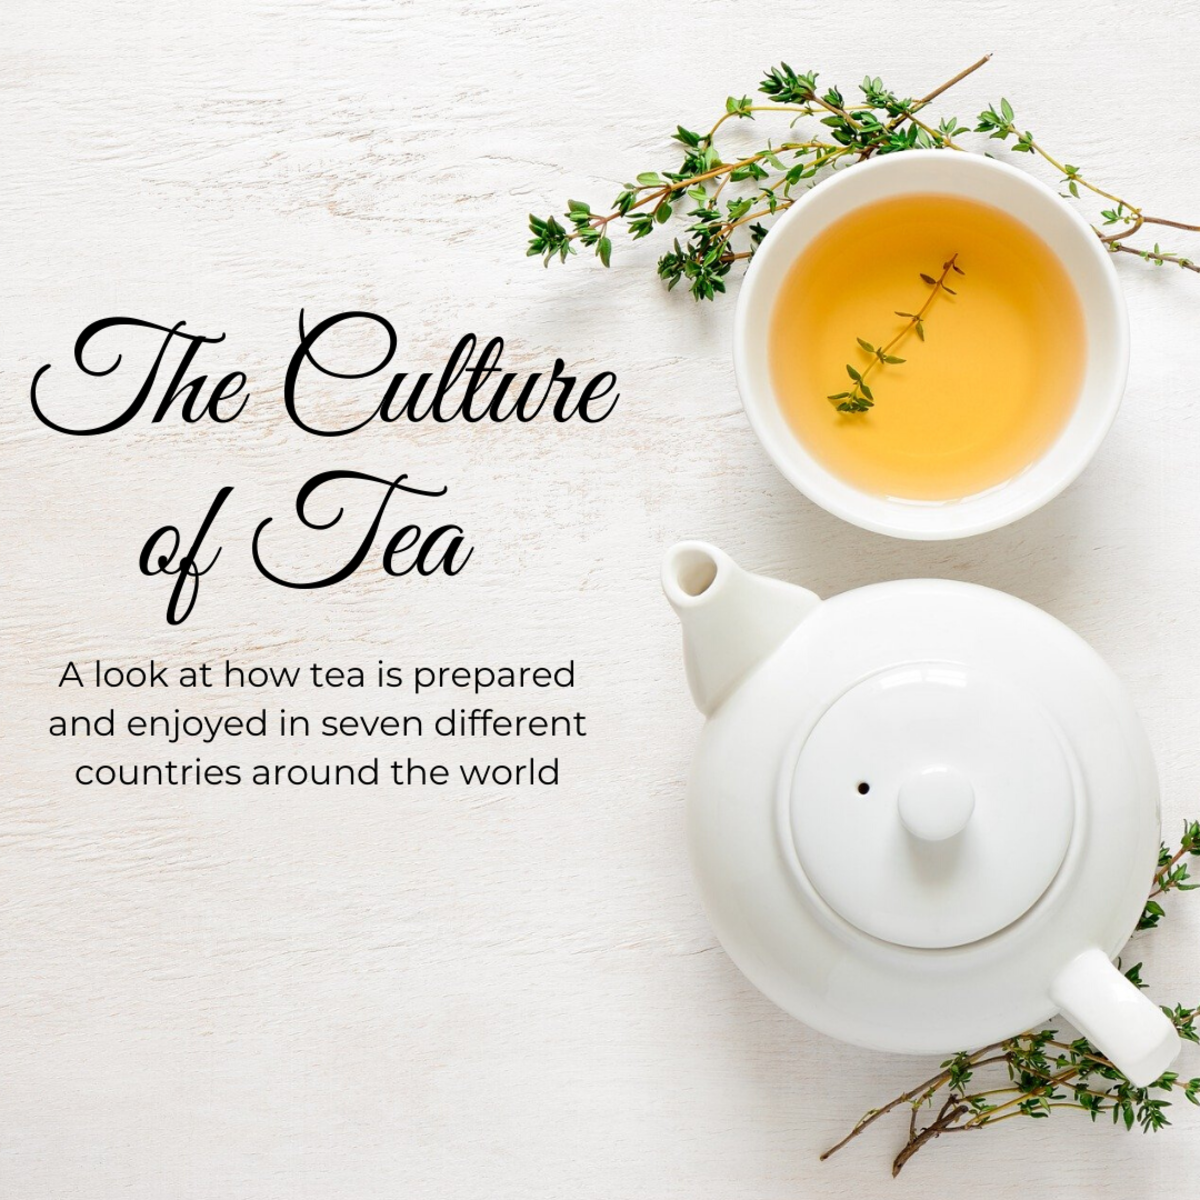 Comparing Tea Culture All Over the World